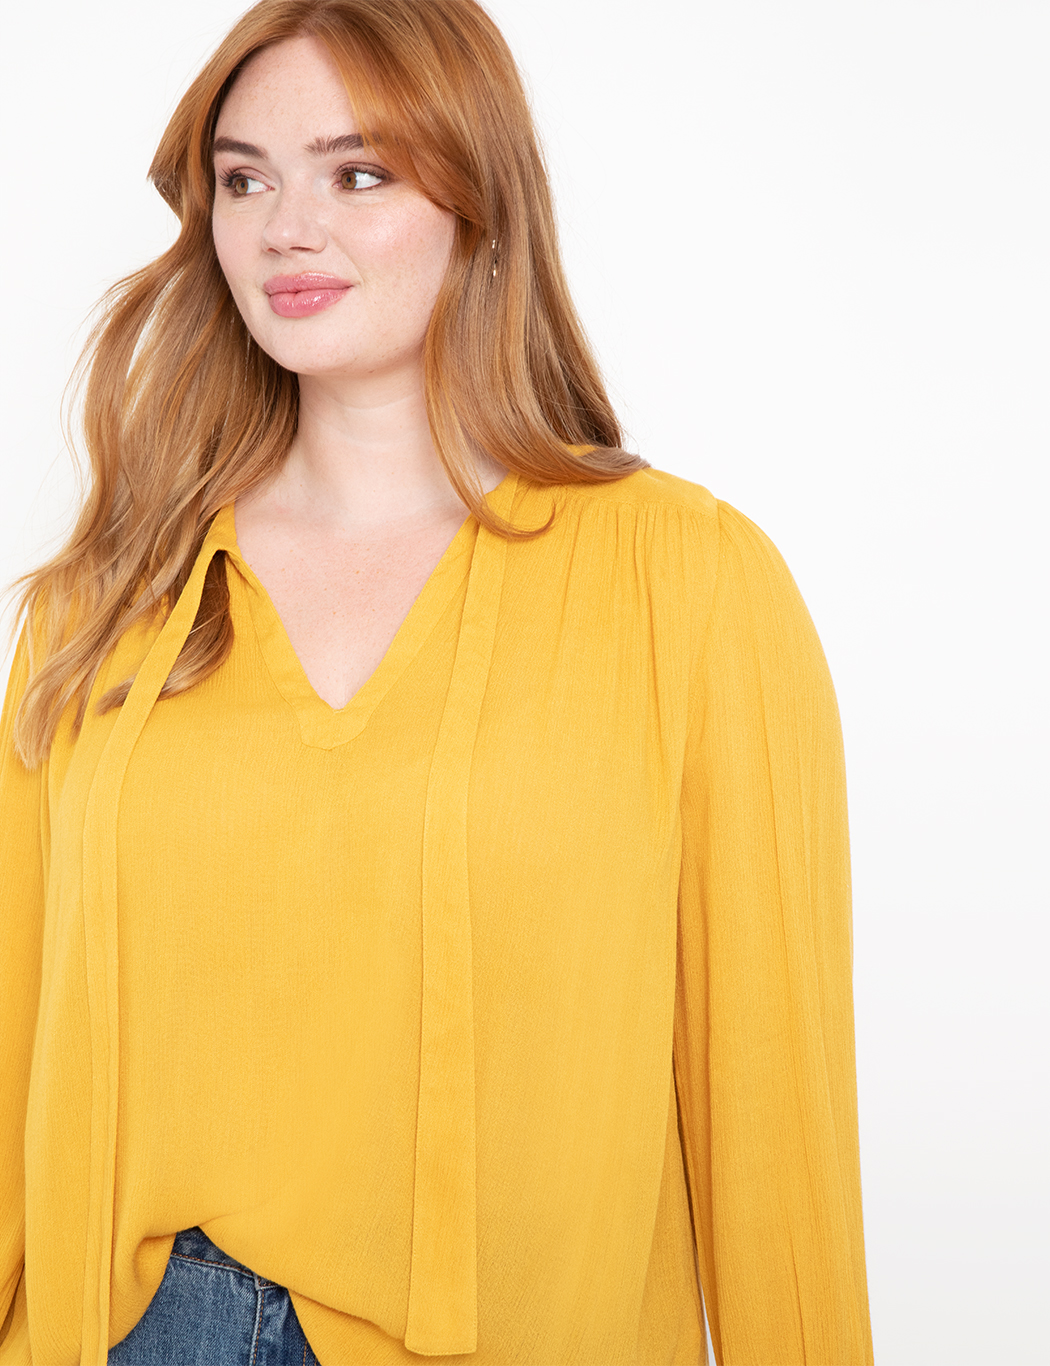 Bow Neck Pleated Top